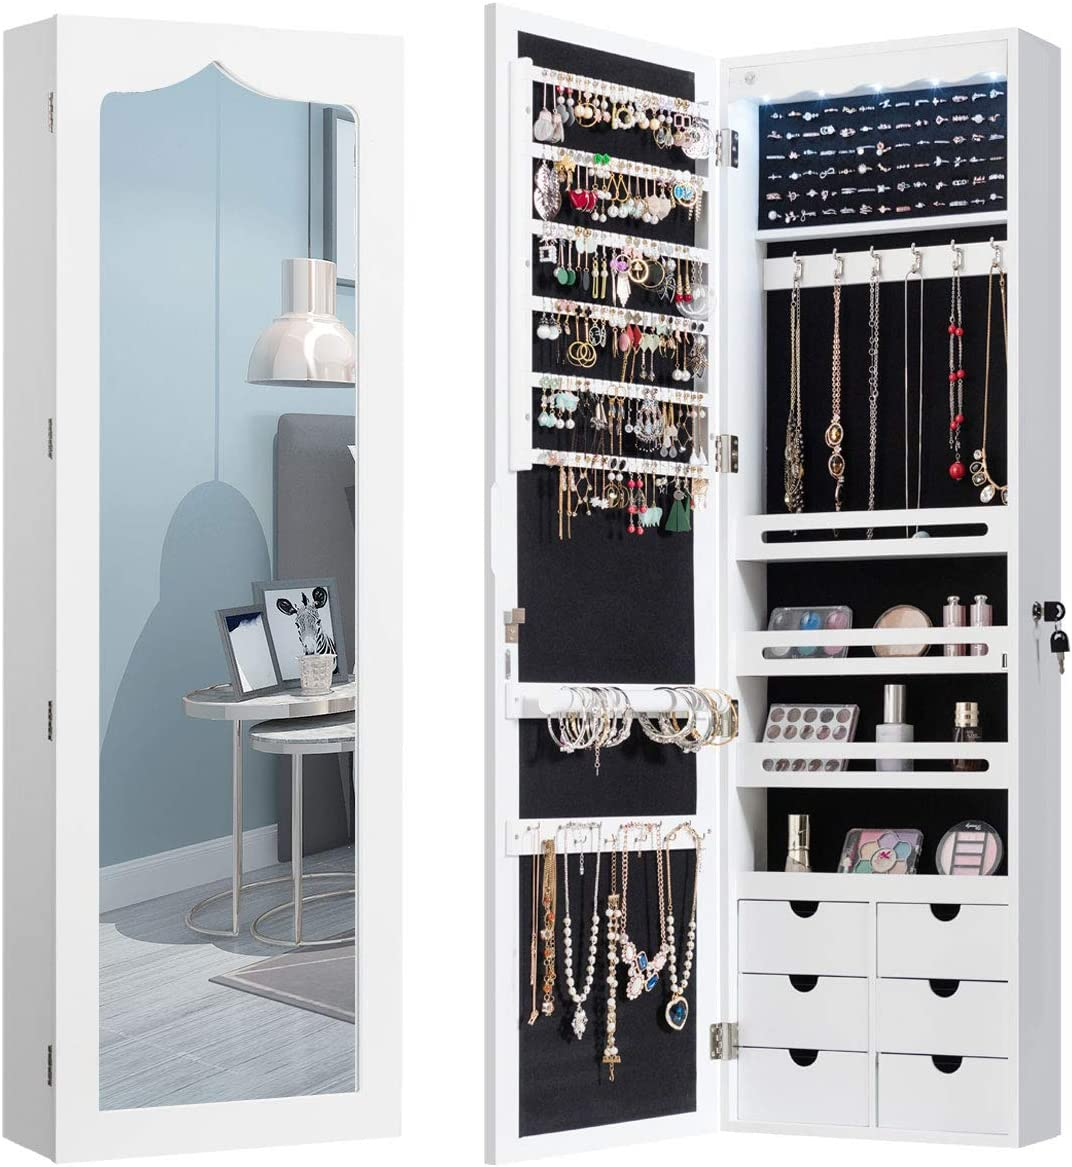 Wall//Door Mounted Cabinet with Full Length Mirror LUXFURNI Jewelry Armoire Organizer